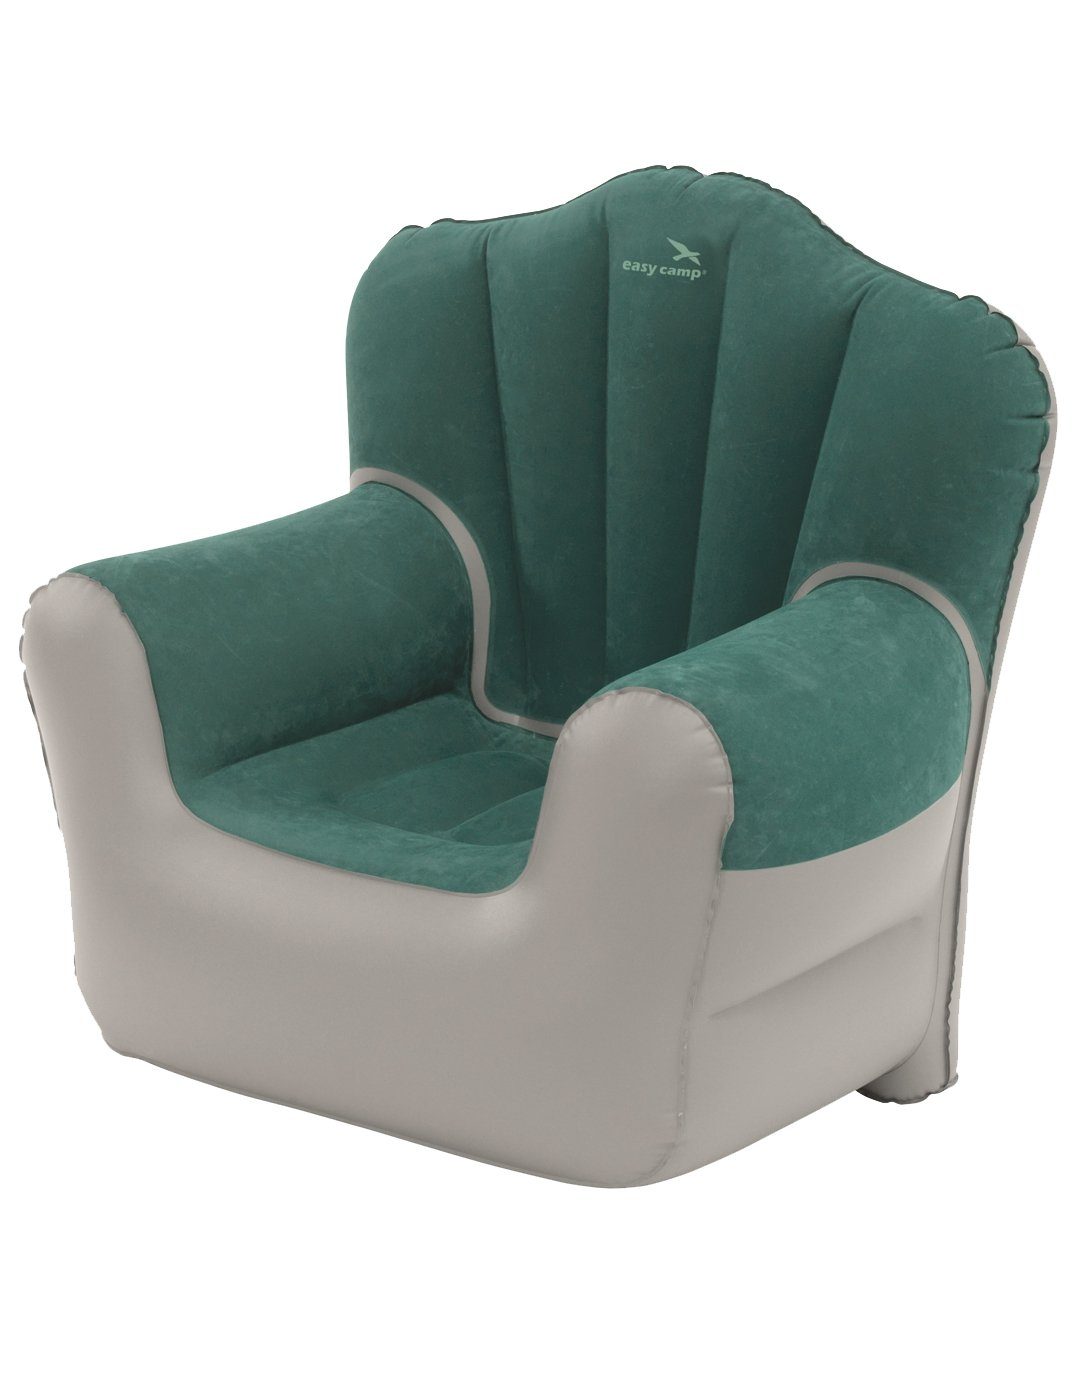 Image of Easy Camp Comfy Chair